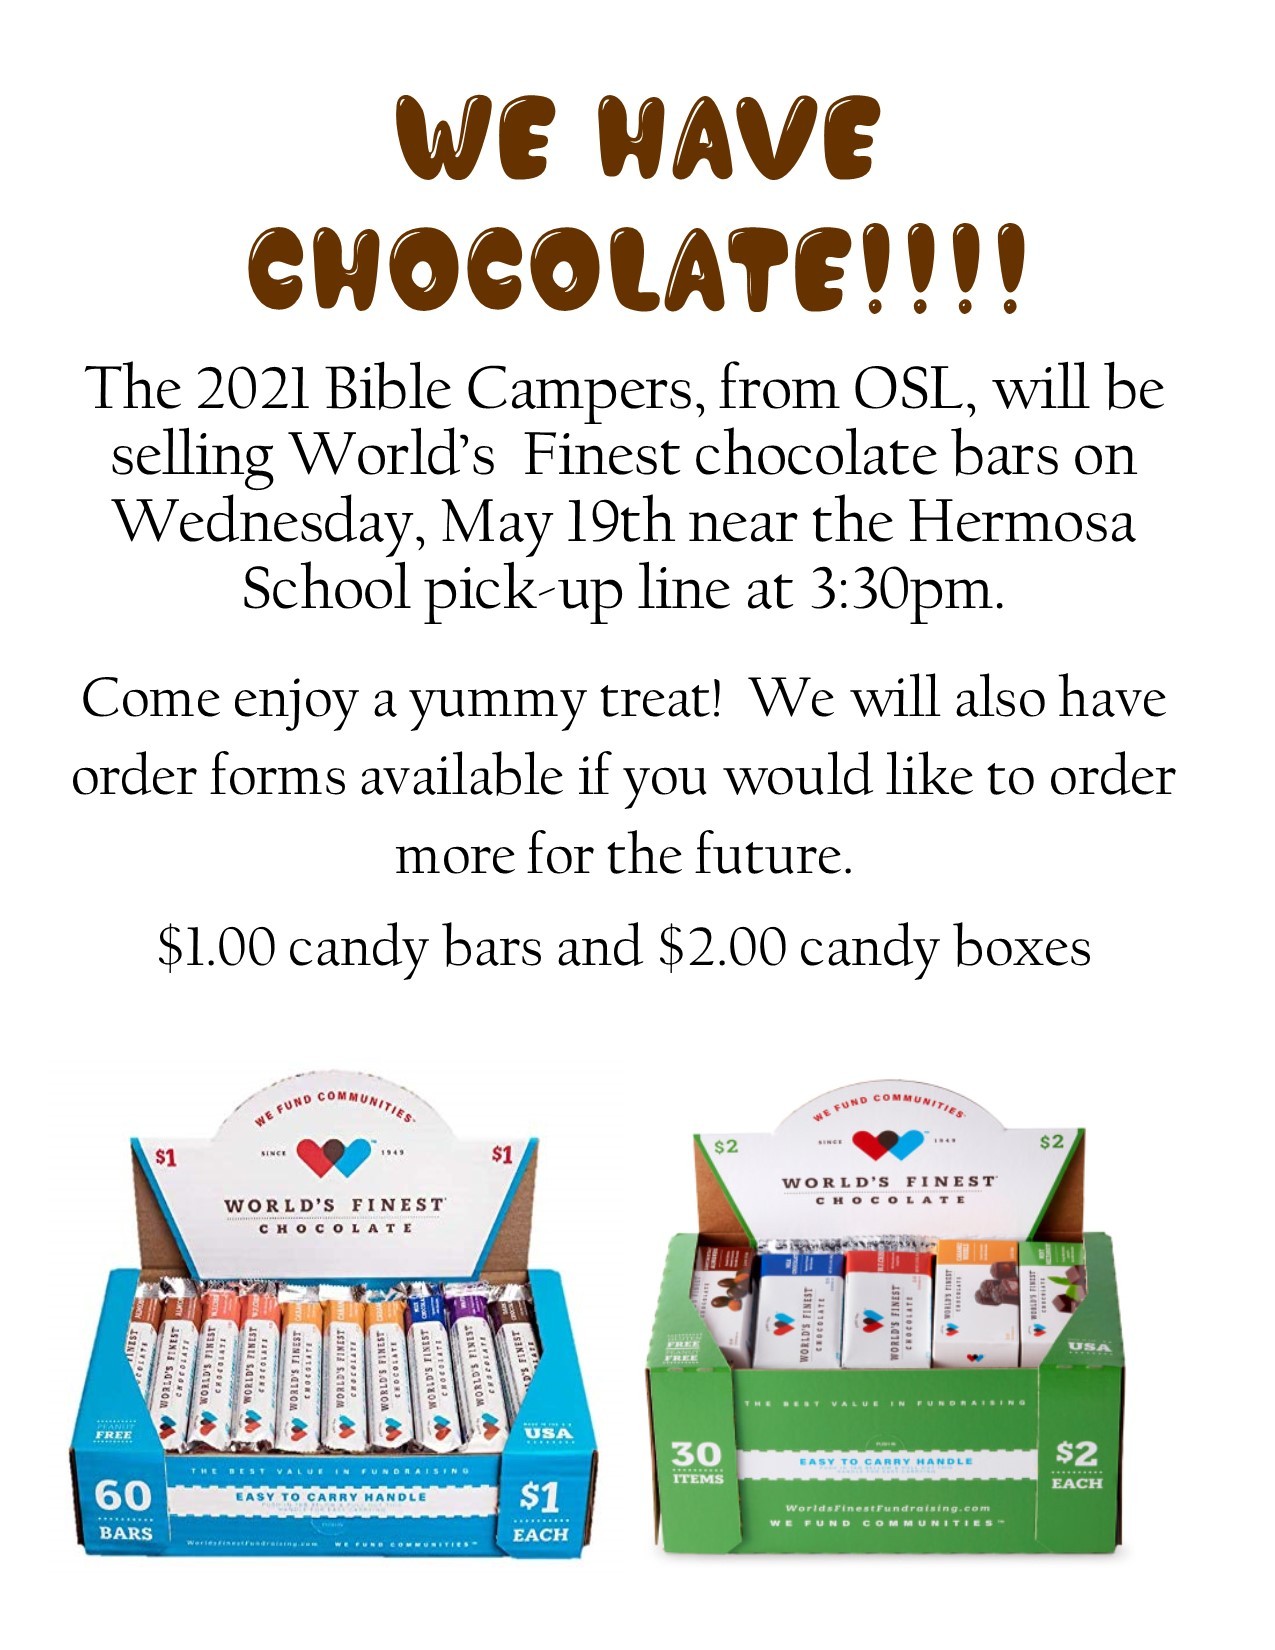 WE HAVE CHOCOLATE!